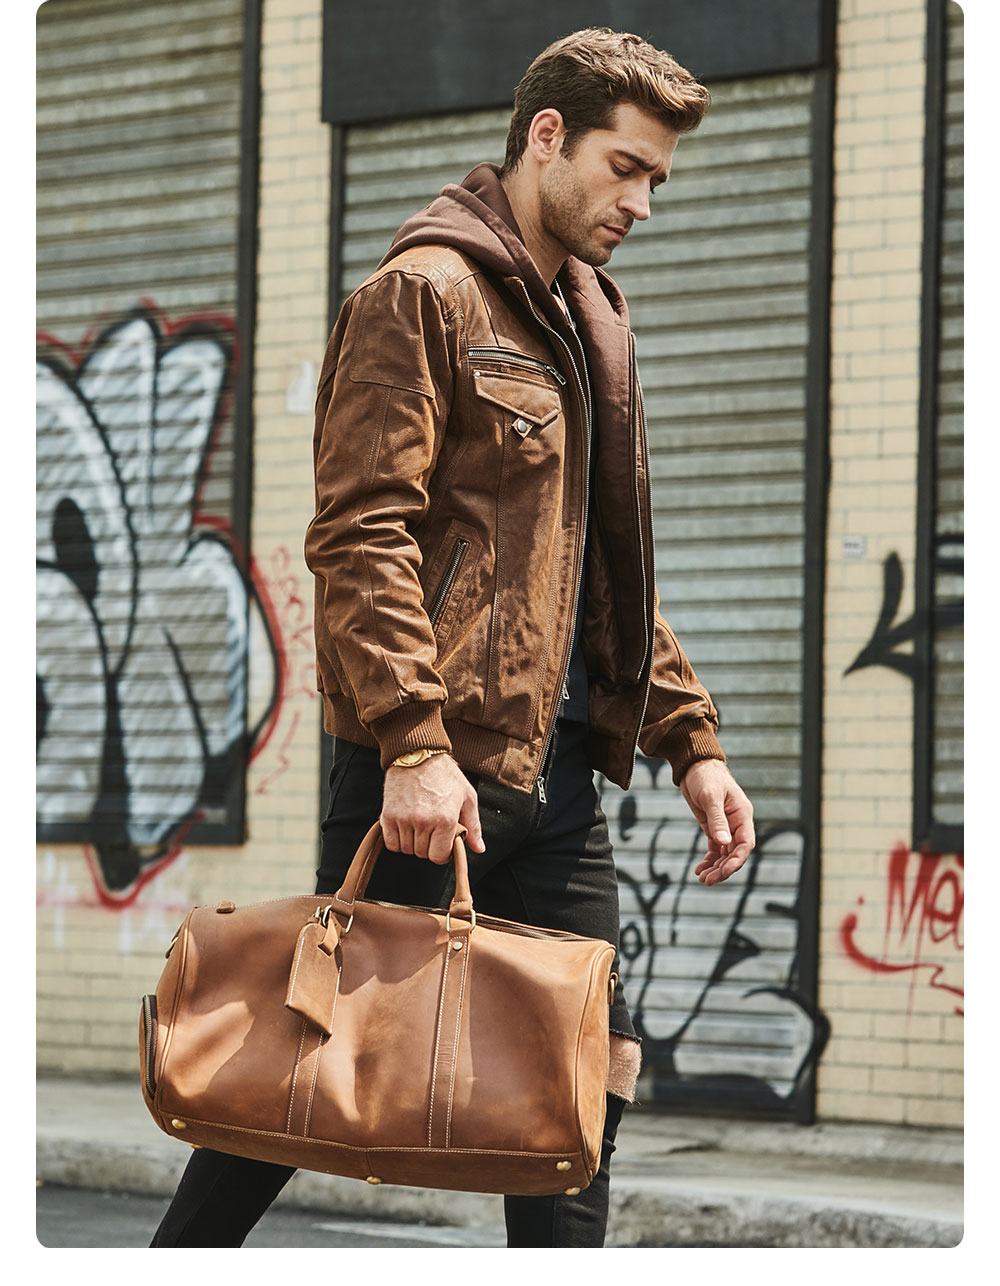 Heb374904524d4fe99bbc20a02d530a004 FLAVOR New Men's Real Leather Jacket with Removable Hood Brown Jacket Genuine Leather Warm Coat For Men